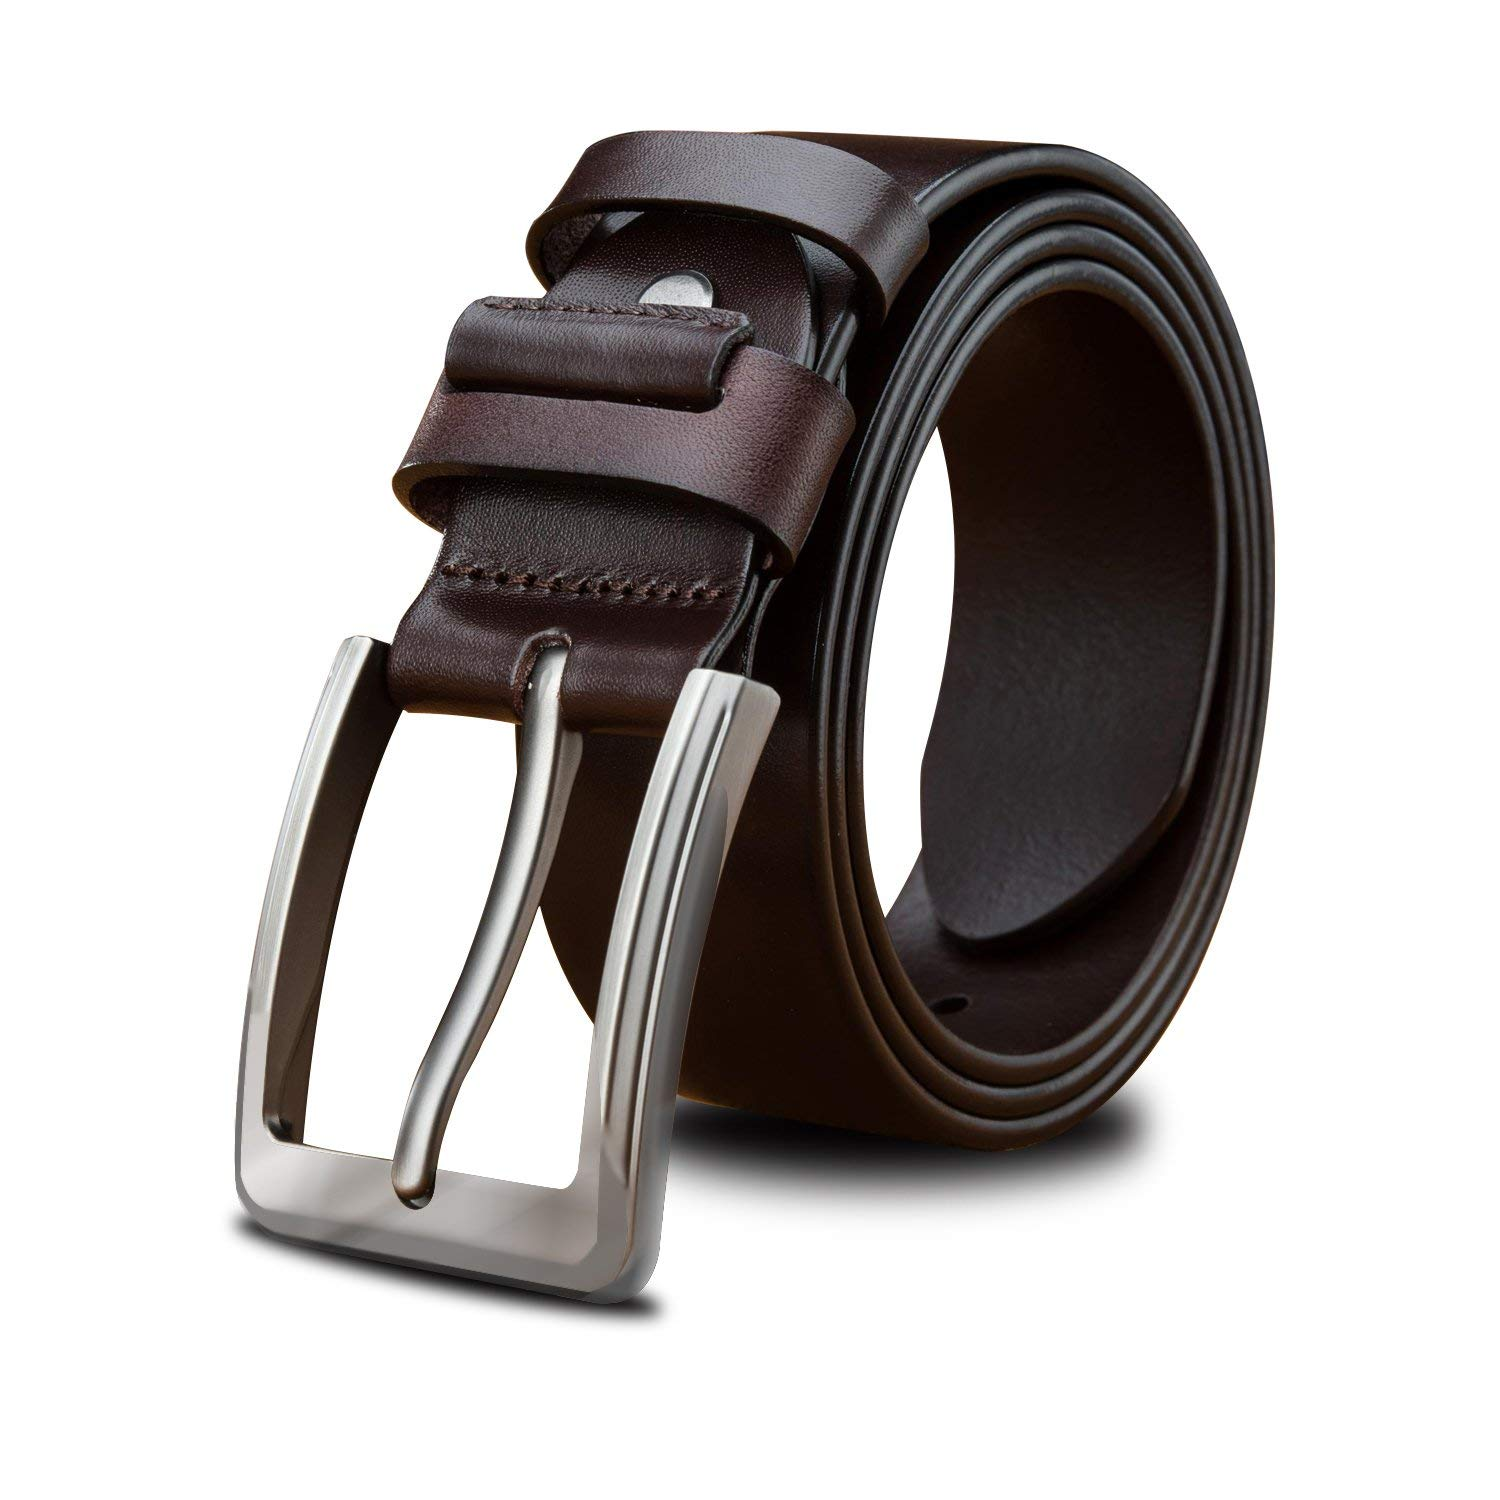 LUCIANO Black Brown Italy Cowhide Genuine Leather Automatic Buckle Dress Belt for Man